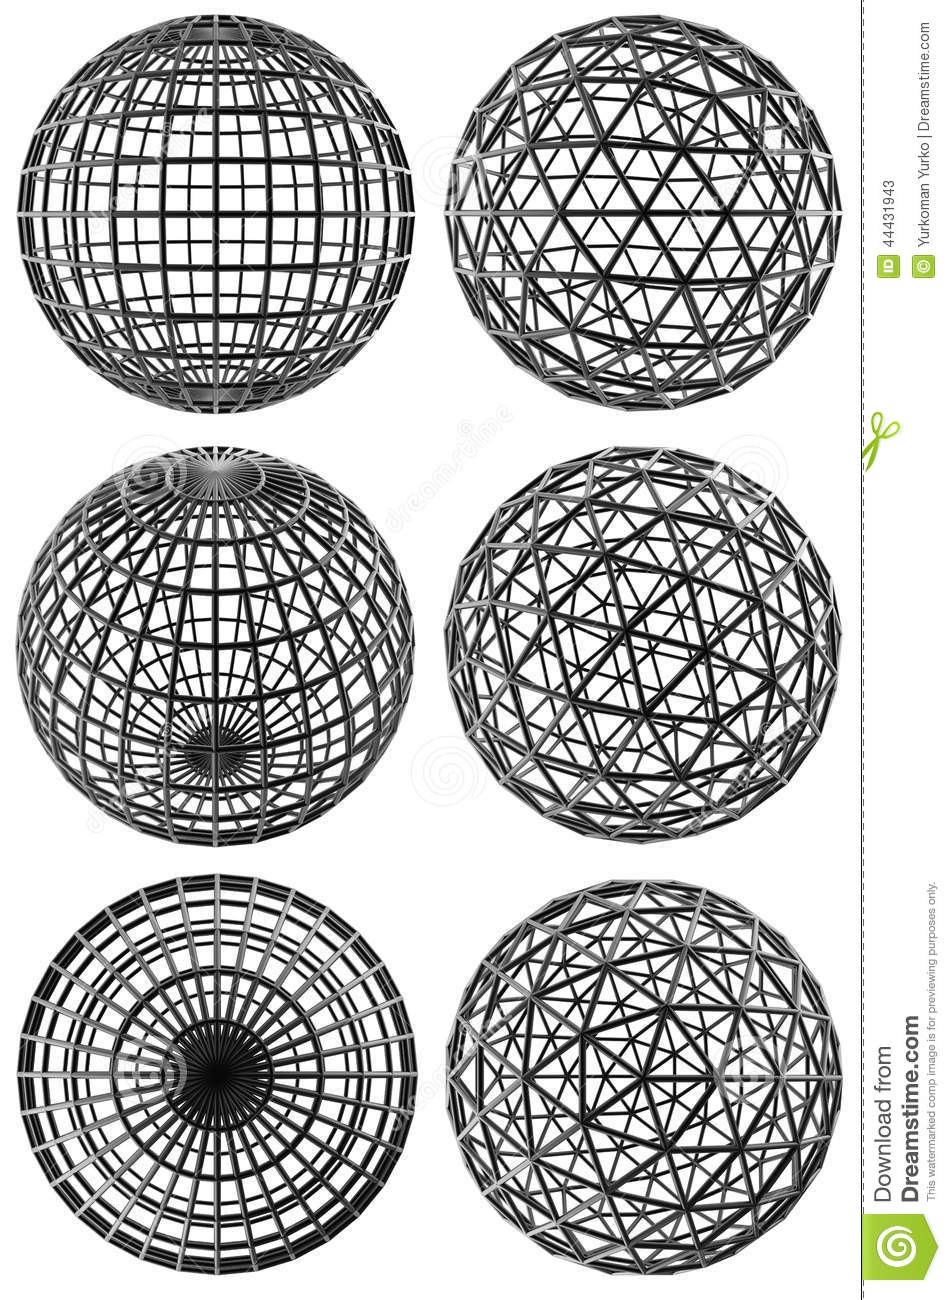 Crystal lattice stock illustration  Illustration of